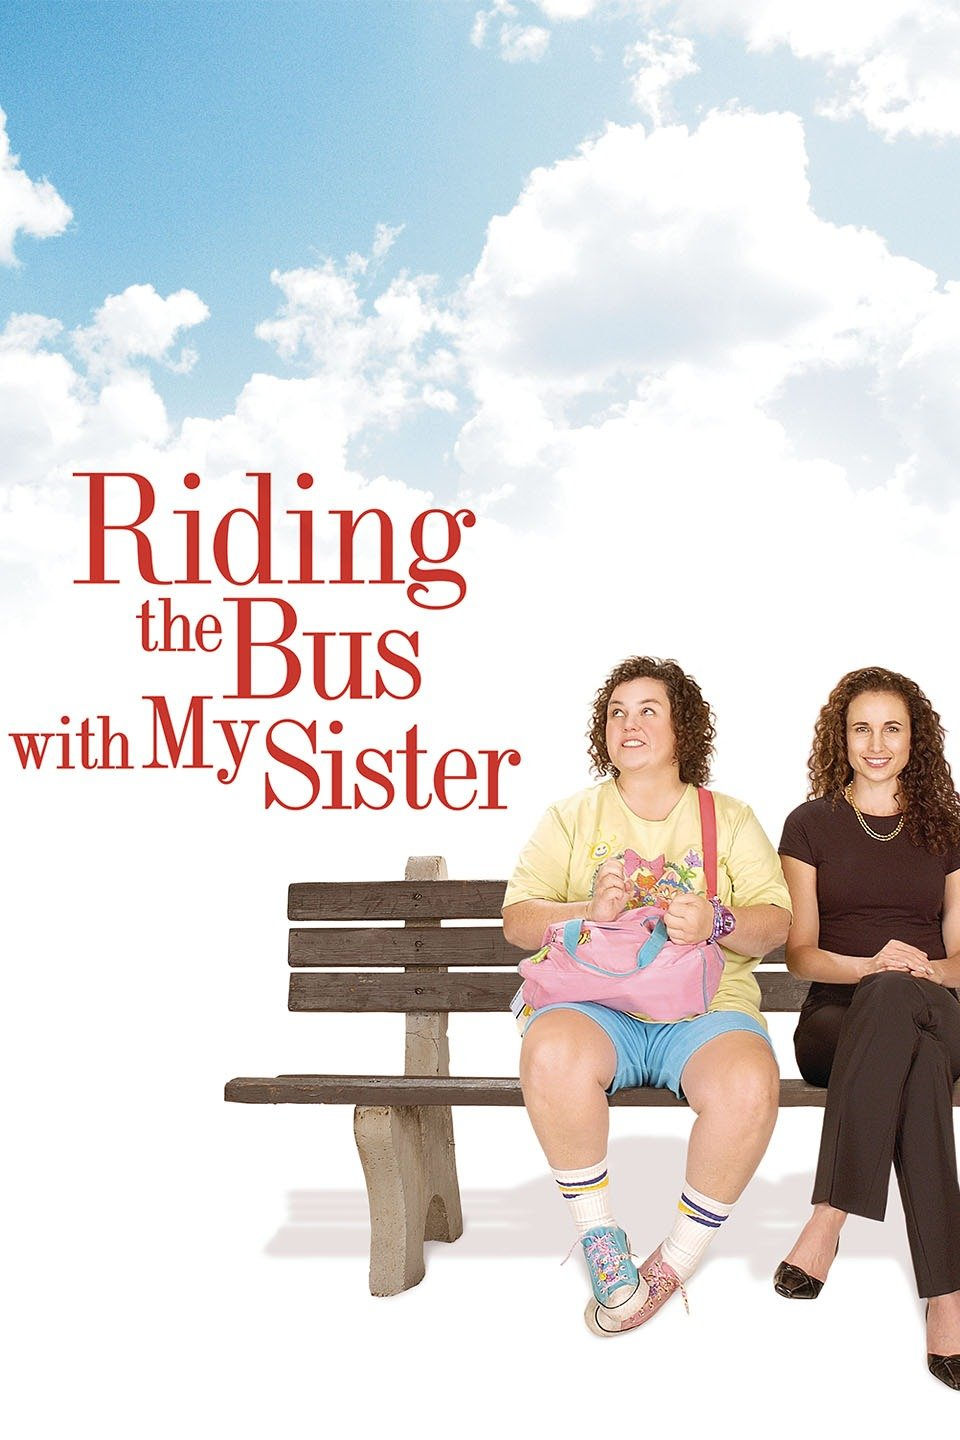 Riding on the bus with my sister dvd